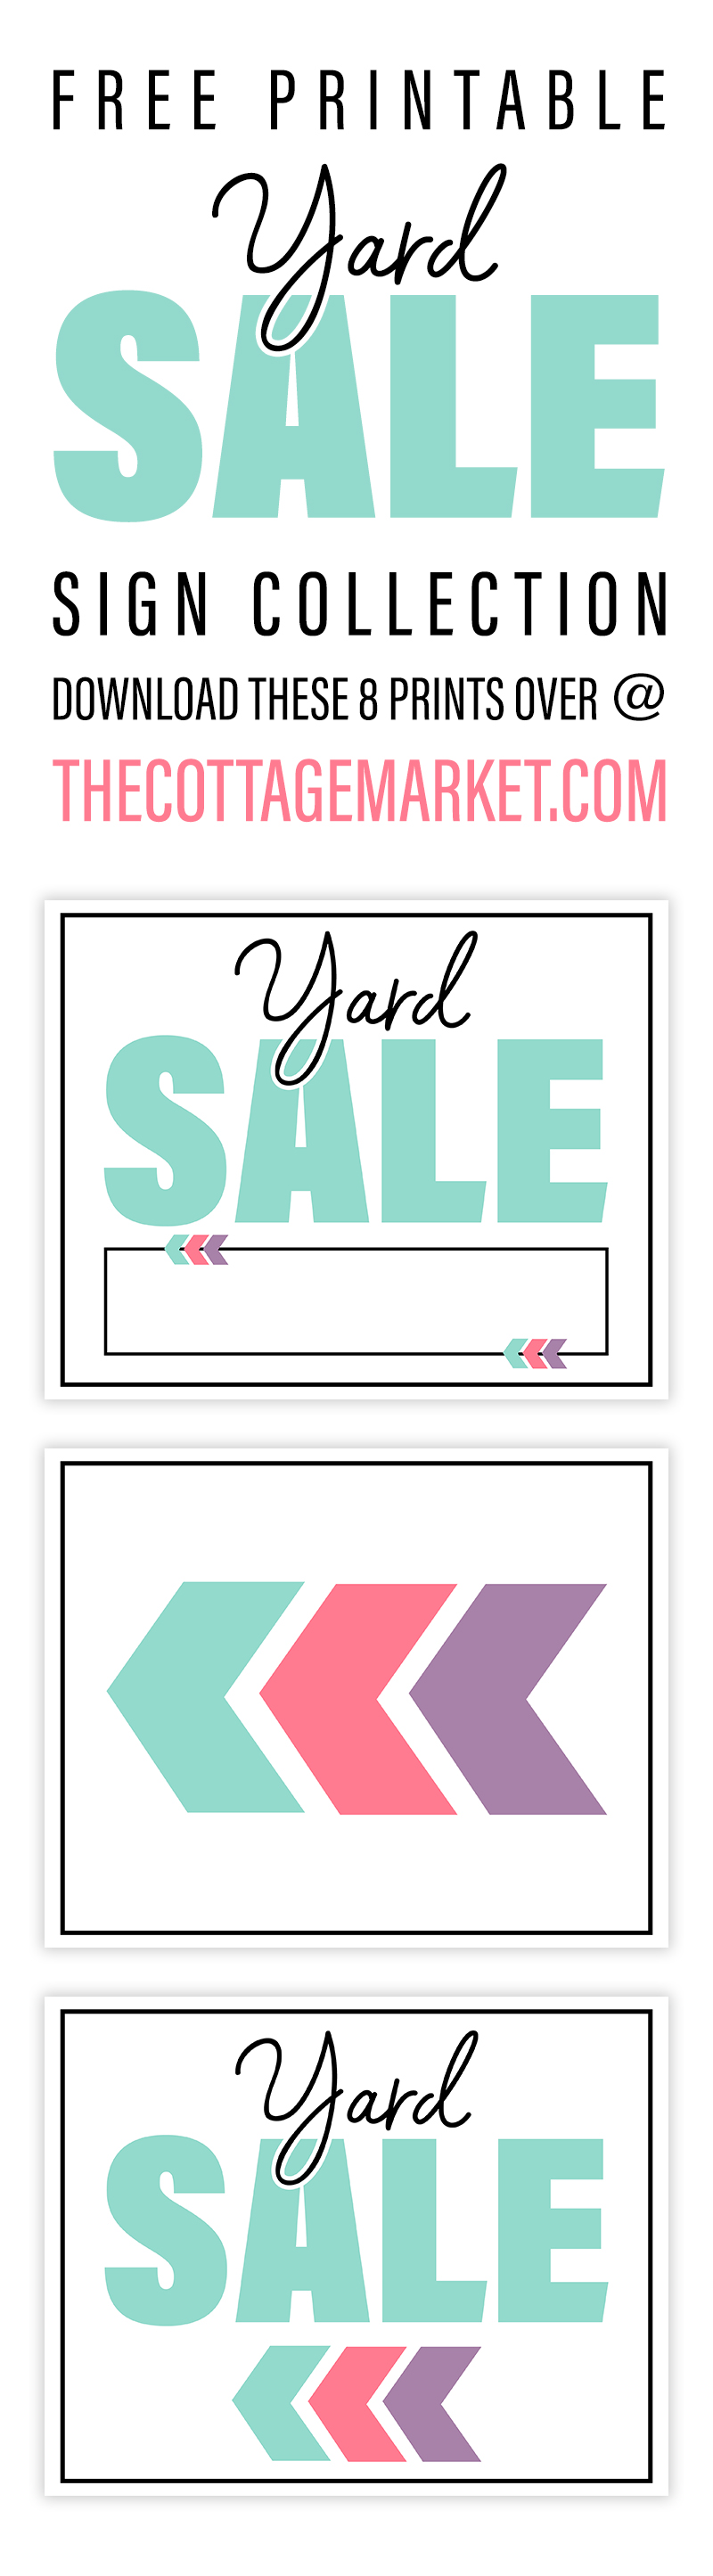 Yard Sale Images Free : images, Printable, Collection, Cottage, Market